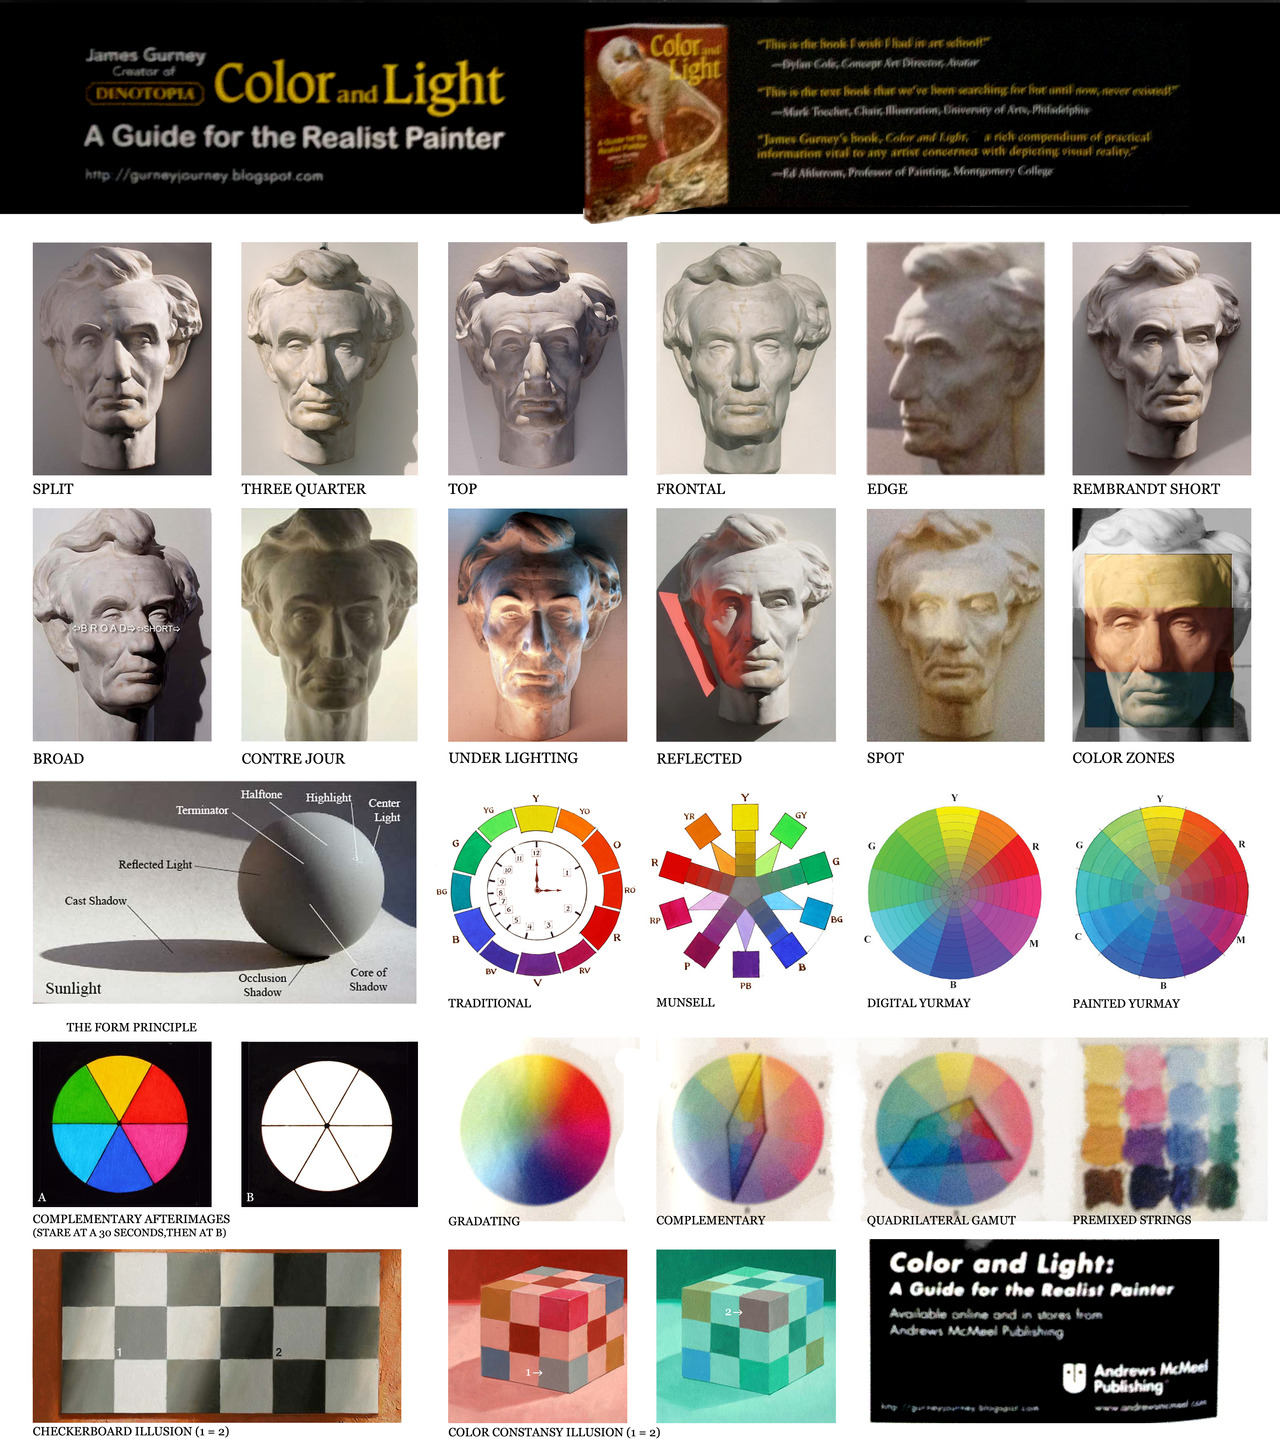 Color and Light Guide for Realist Painters qnq: So, after years of visiting possibly the greatest art resource online, Gurney Journey (website of the creator of the gorgeous Dinotopia series, as well as numerous amazing drawing/painting books. Seriously this guy is INCREDIBLE LOOK AT HIS BLOG), I got this amazing poster promoting his latest book, Color and Light. But I am vary rarely in one place long enough to look at the glorious thing on my wall, so I compiled a digital version. You can buy his wonderful books here, but as far as I know the poster isn't available in his store :< Edit - Higher res. cause Tumblr.